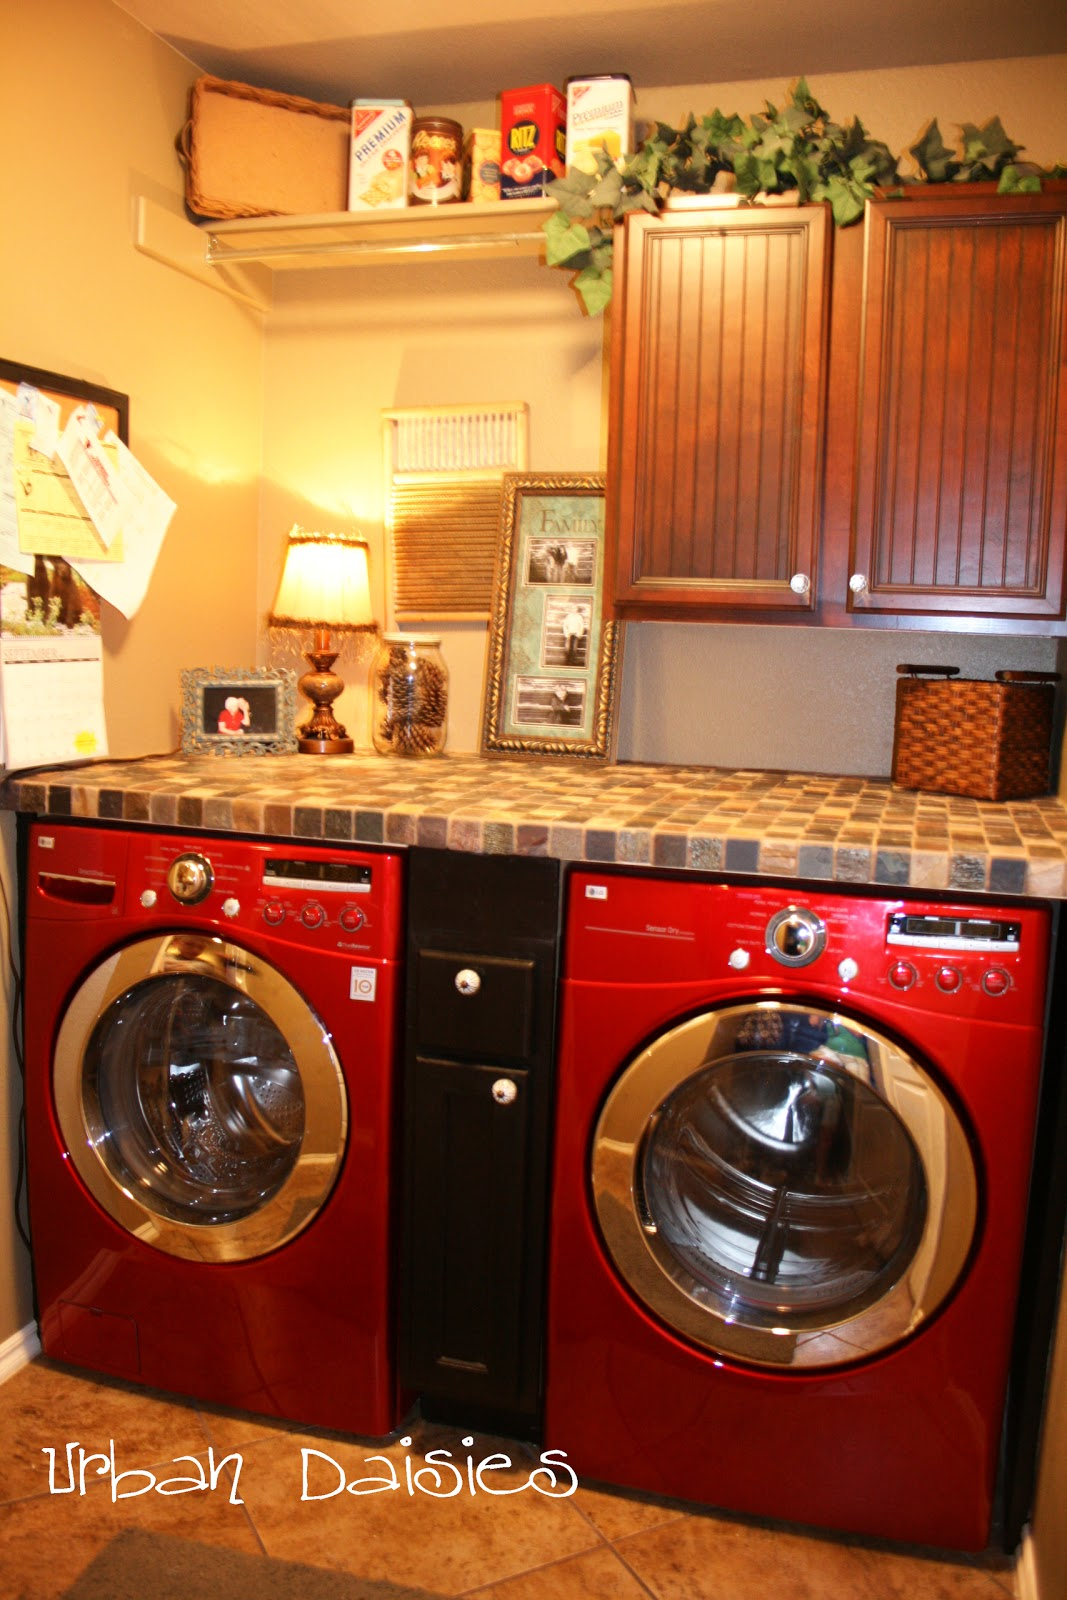 Urban Daisies Laundry Room Redo